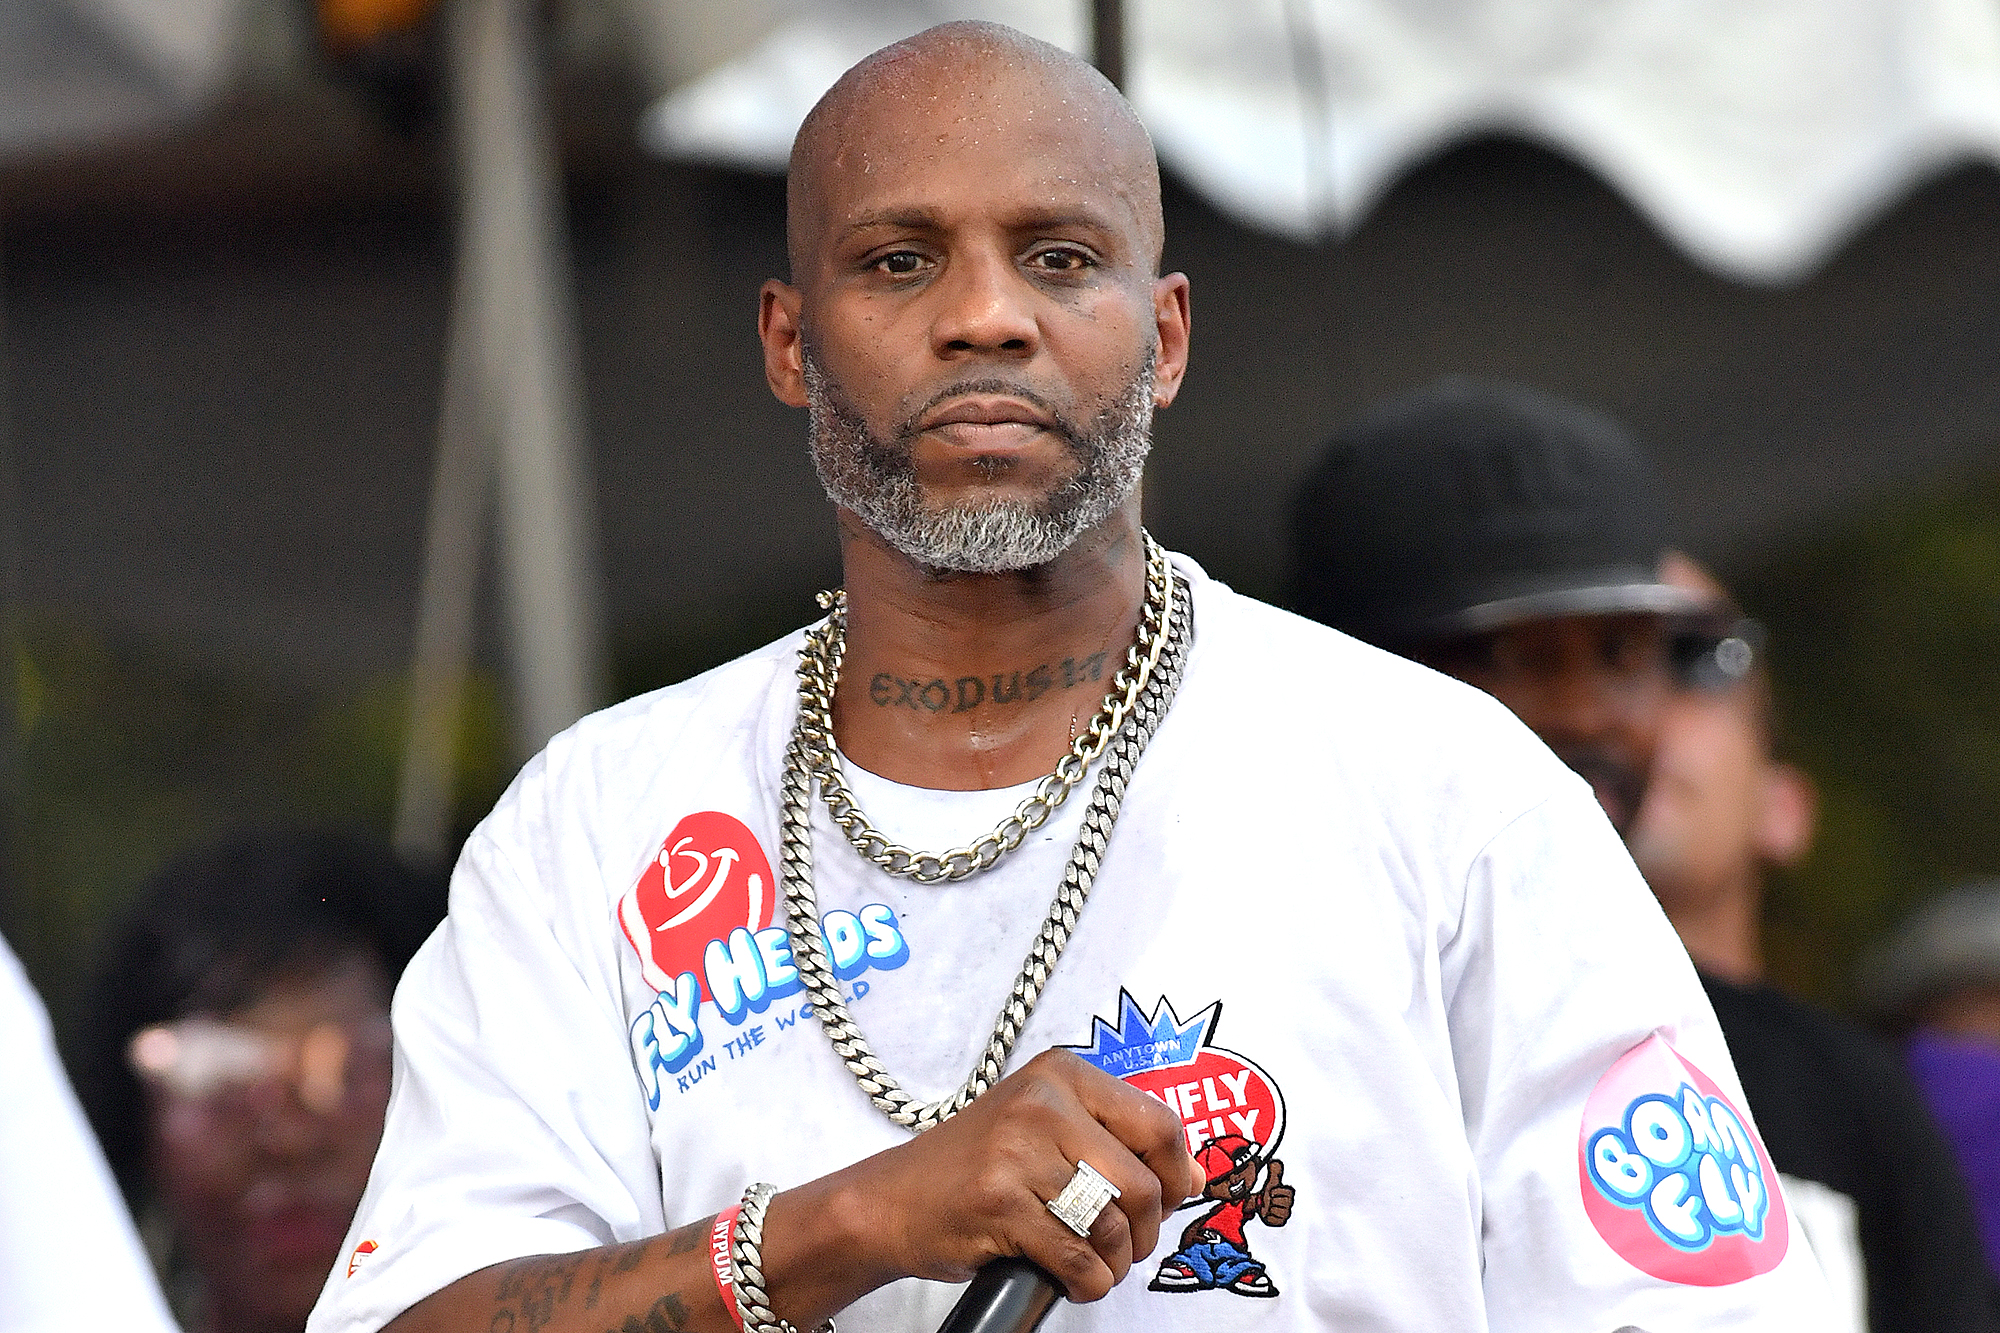 DMX to Be Honored at a Public Memorial Service at Brooklyn's Barclays Center